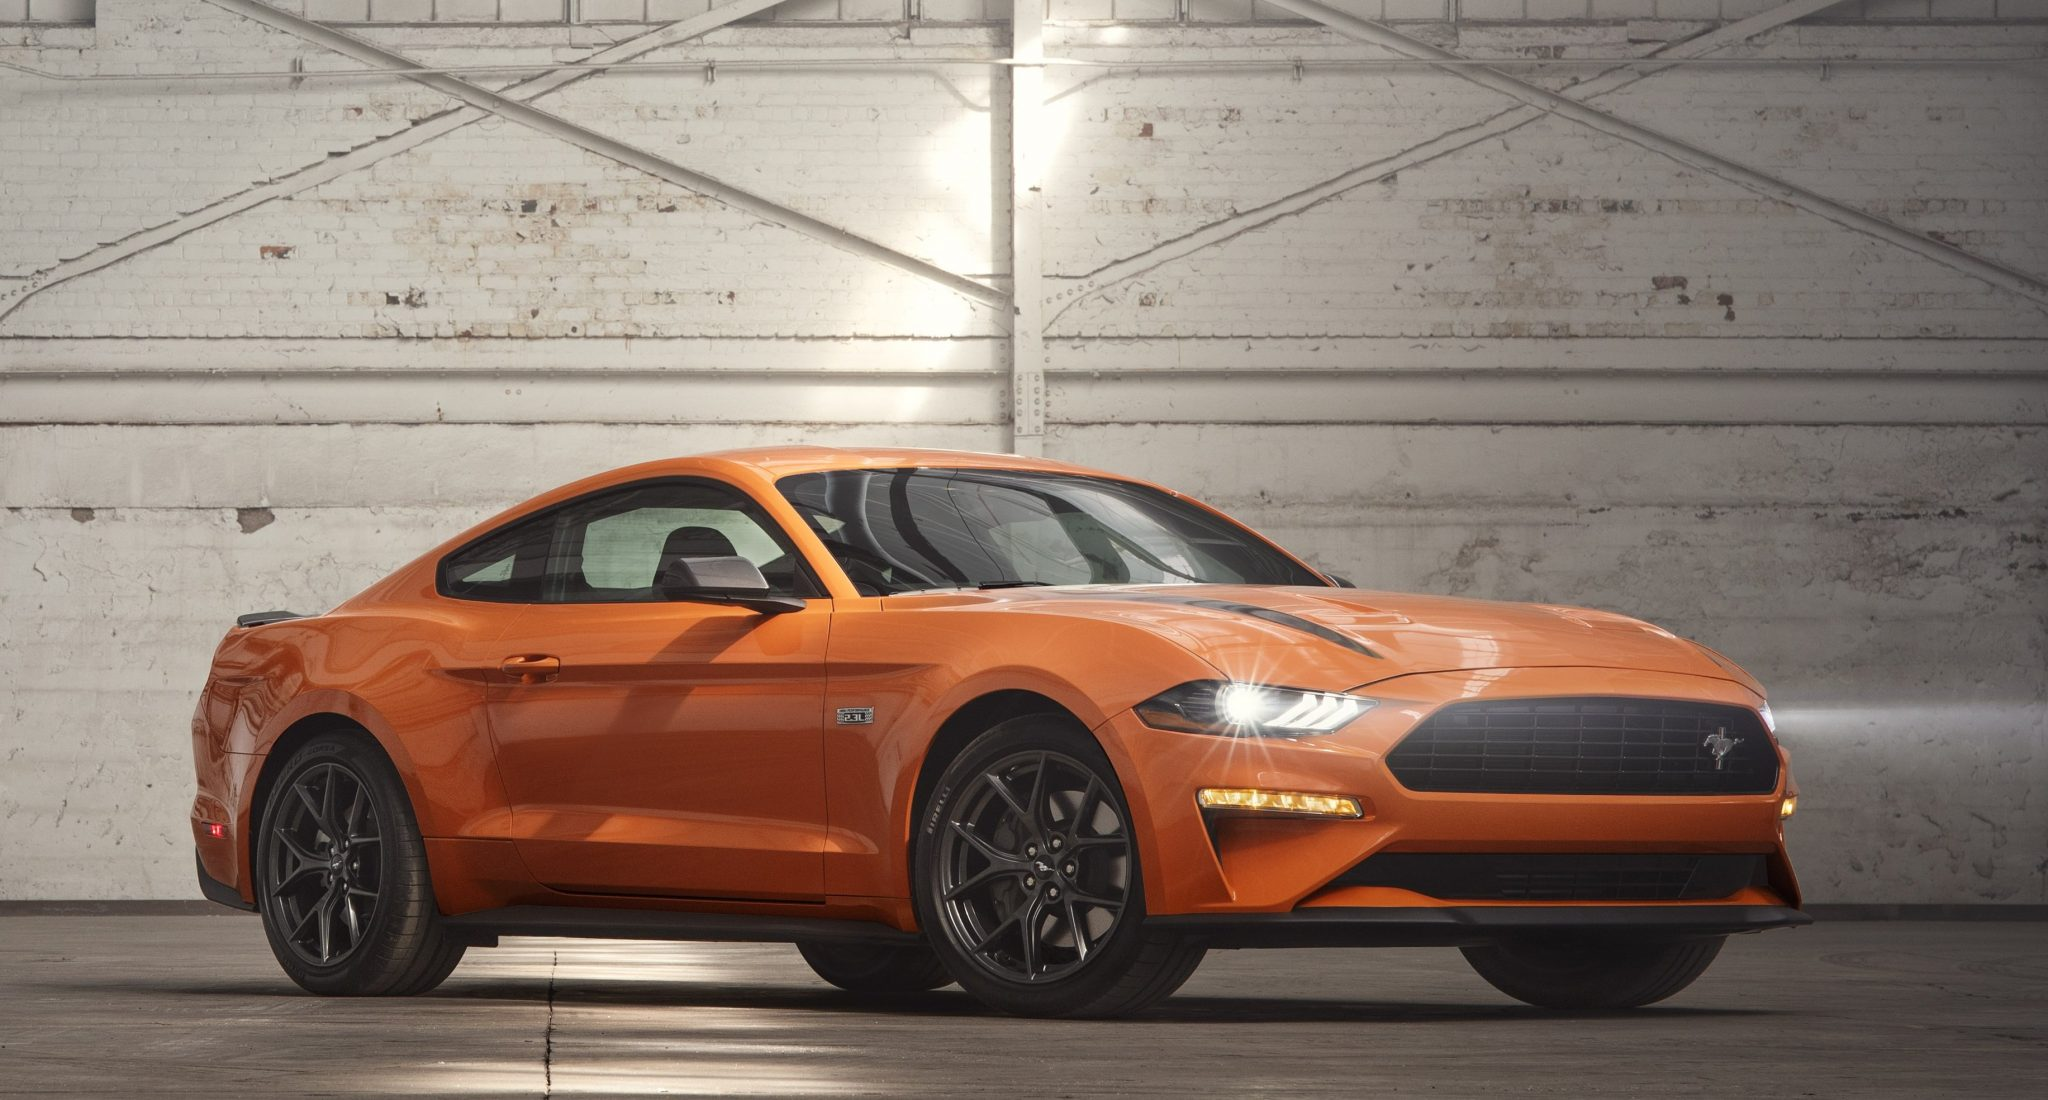 Ford mustang clinches best selling sport coupe in the world again